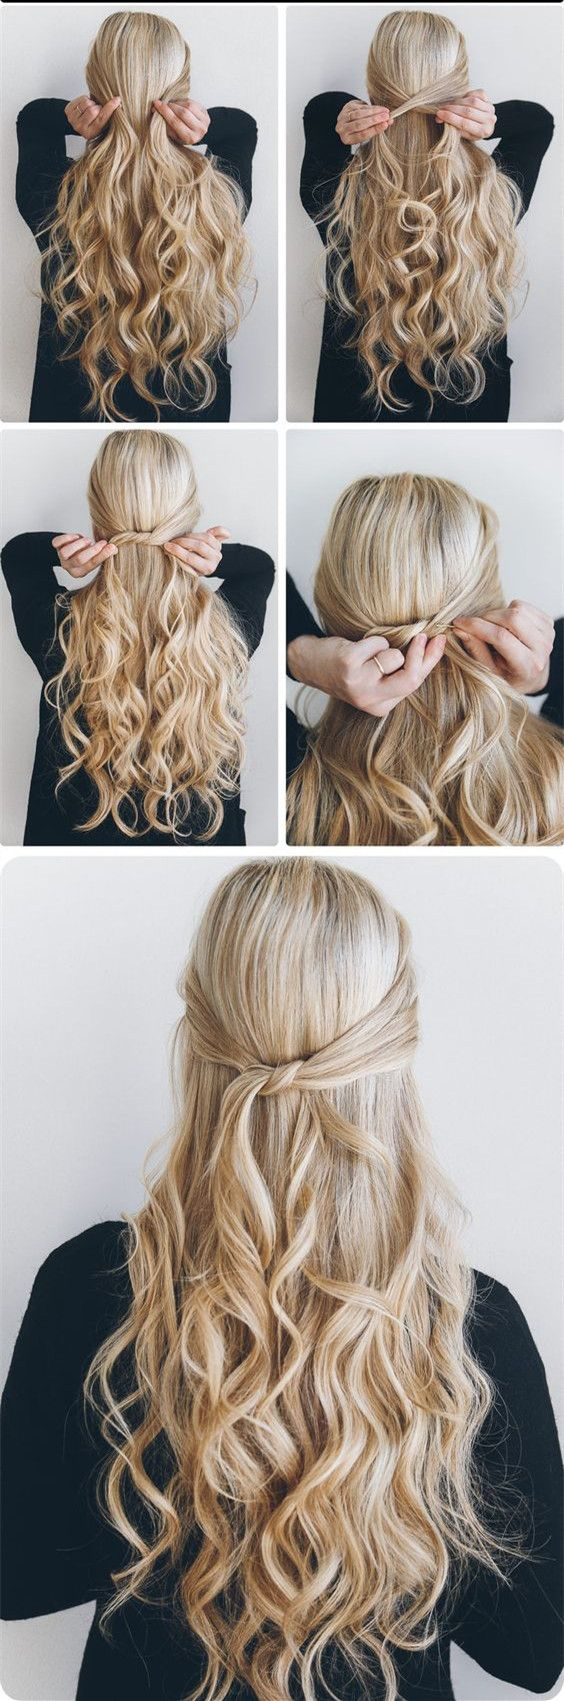 Easy and beautiful hair style. Sunny hair 100% real human hair extensions. The hair could be straightened and curled as you like. Professional quality, free expedited shipping. www.g-sunny.com